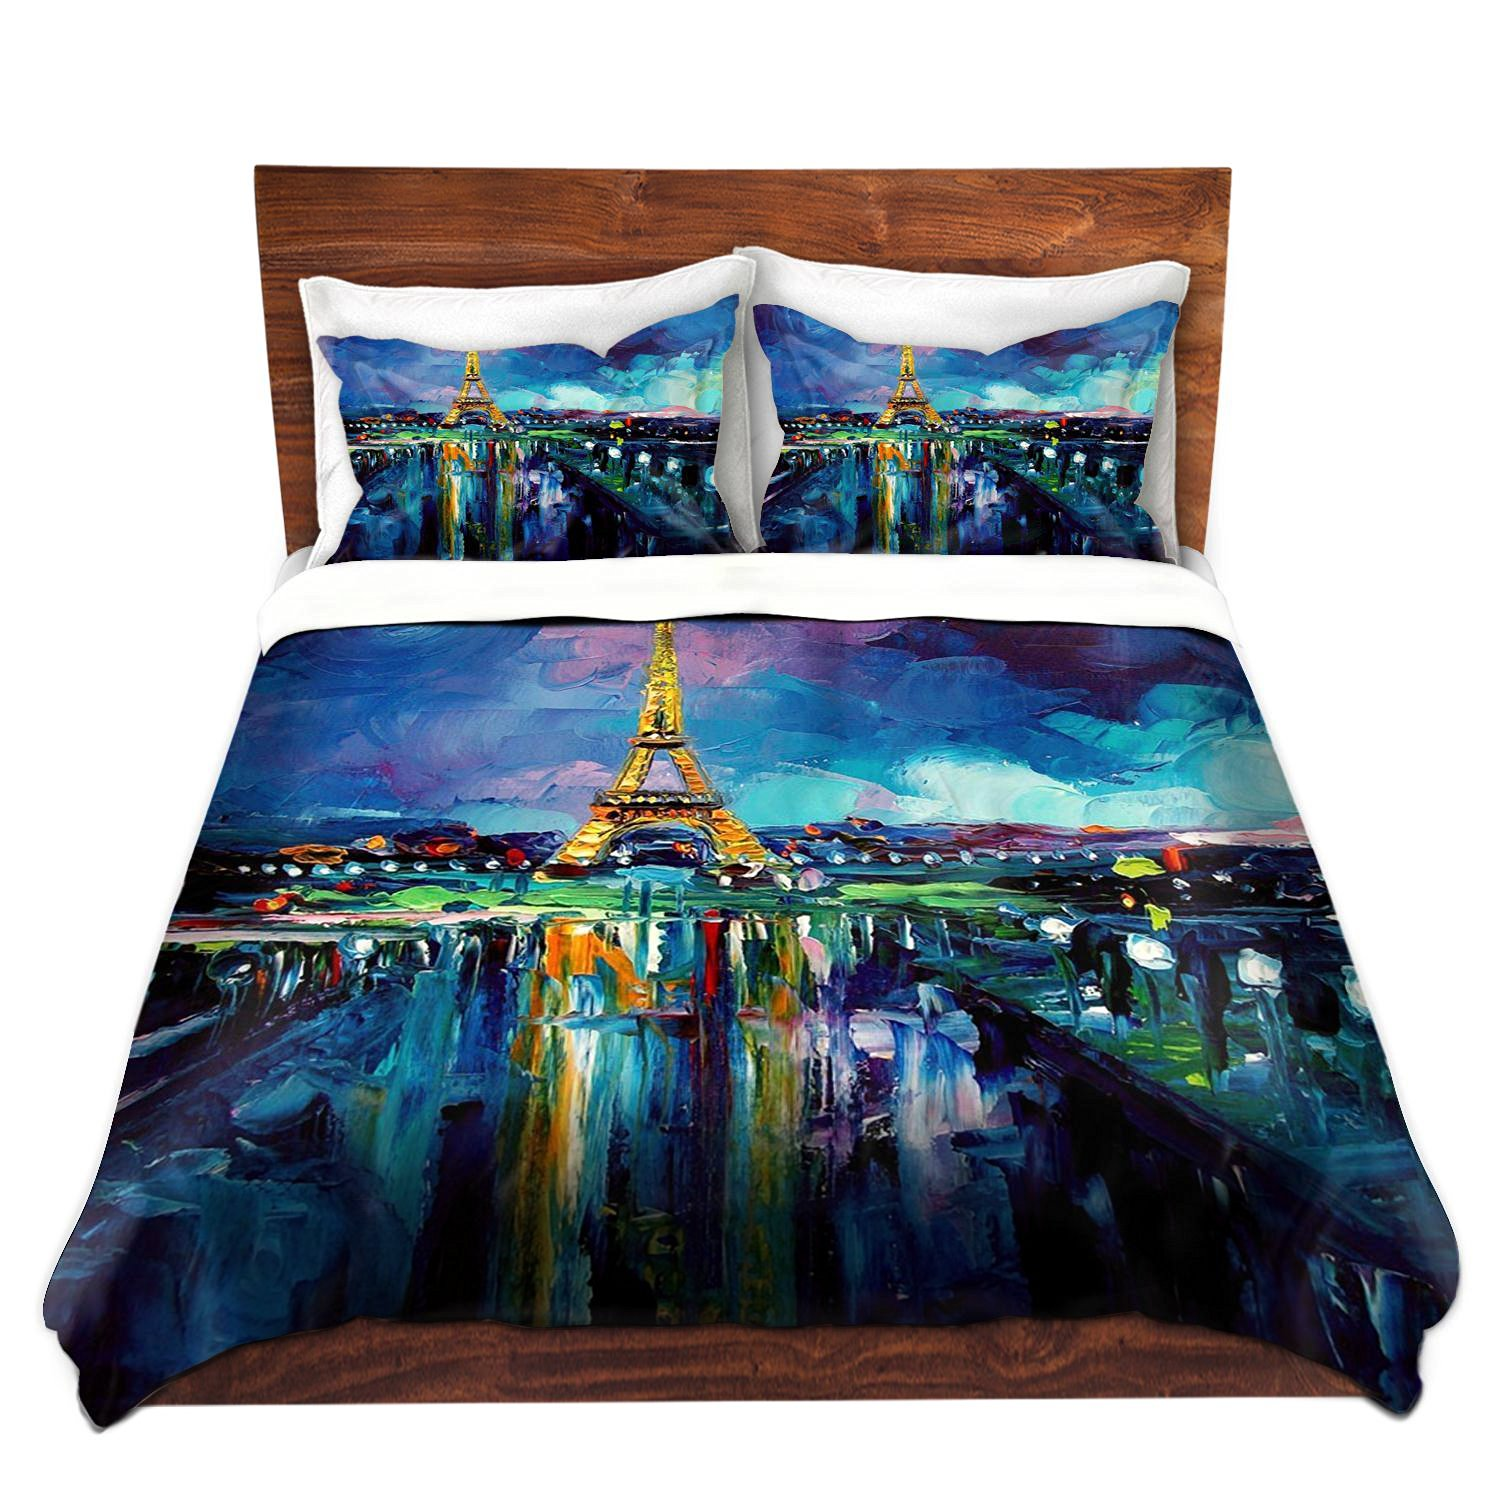 eiffel tower and paris themed bedding cute comforters - Paris Bedding